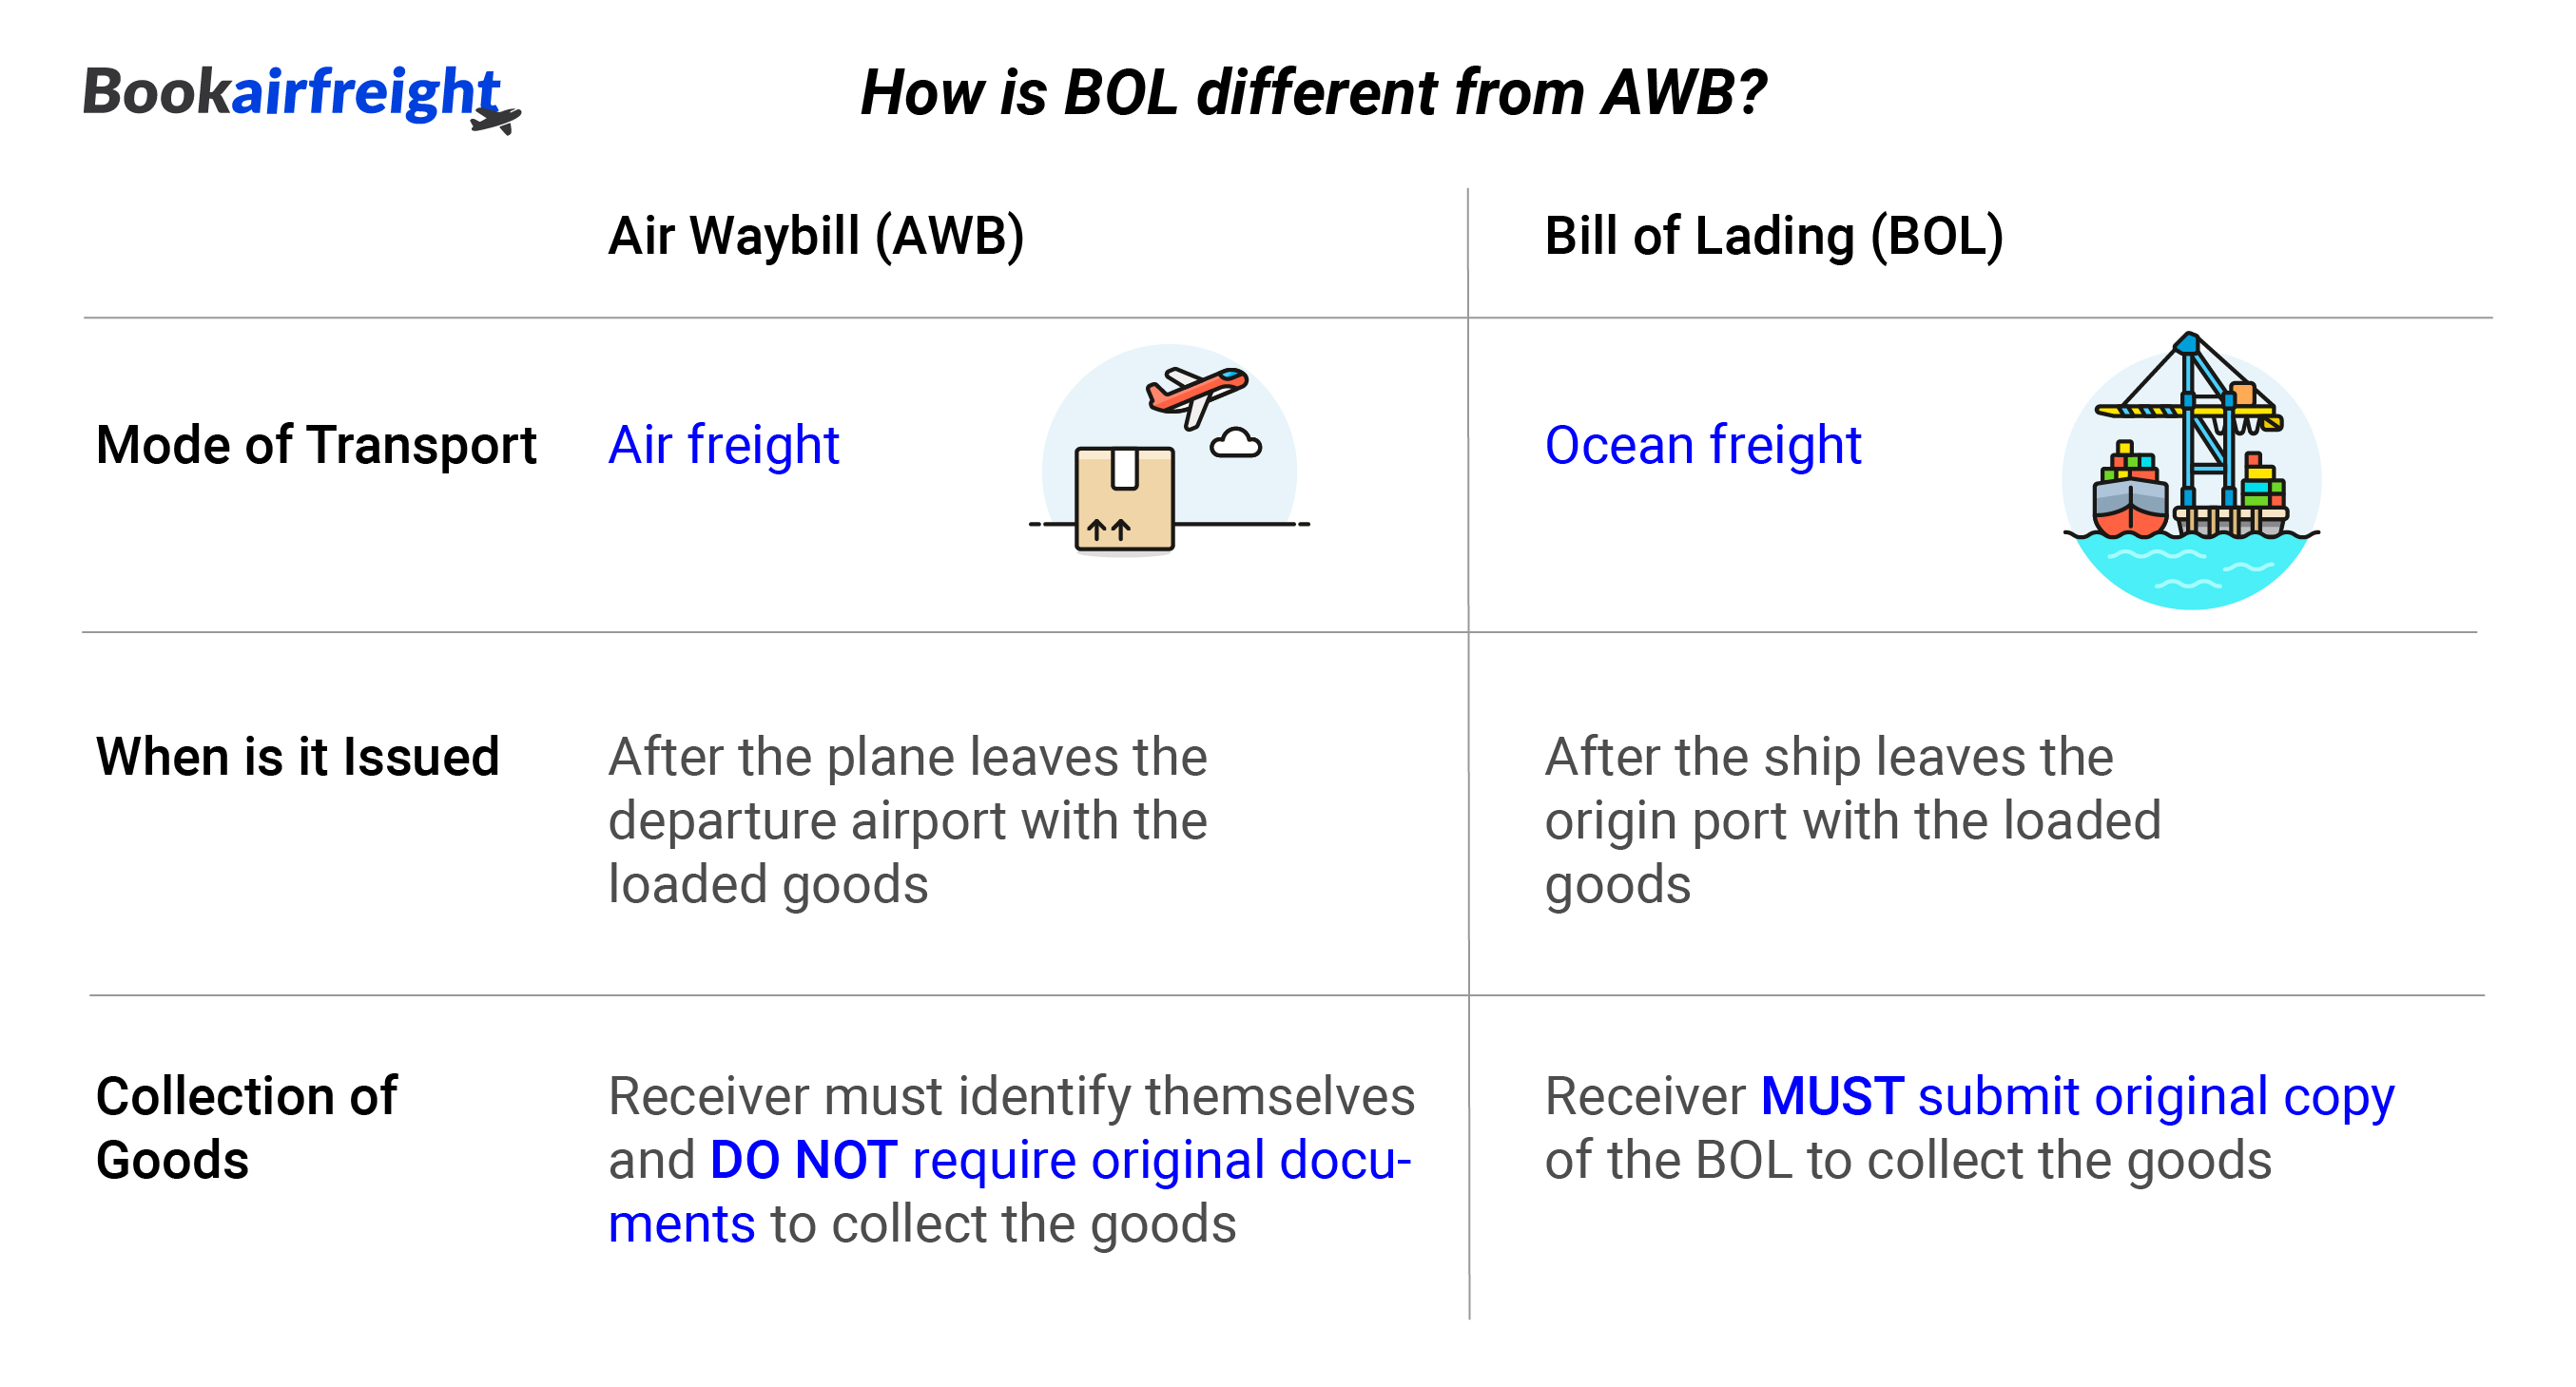 Bookairfreight - How is Bill of Lading (BOL) different from Air Waybill (AWB)?